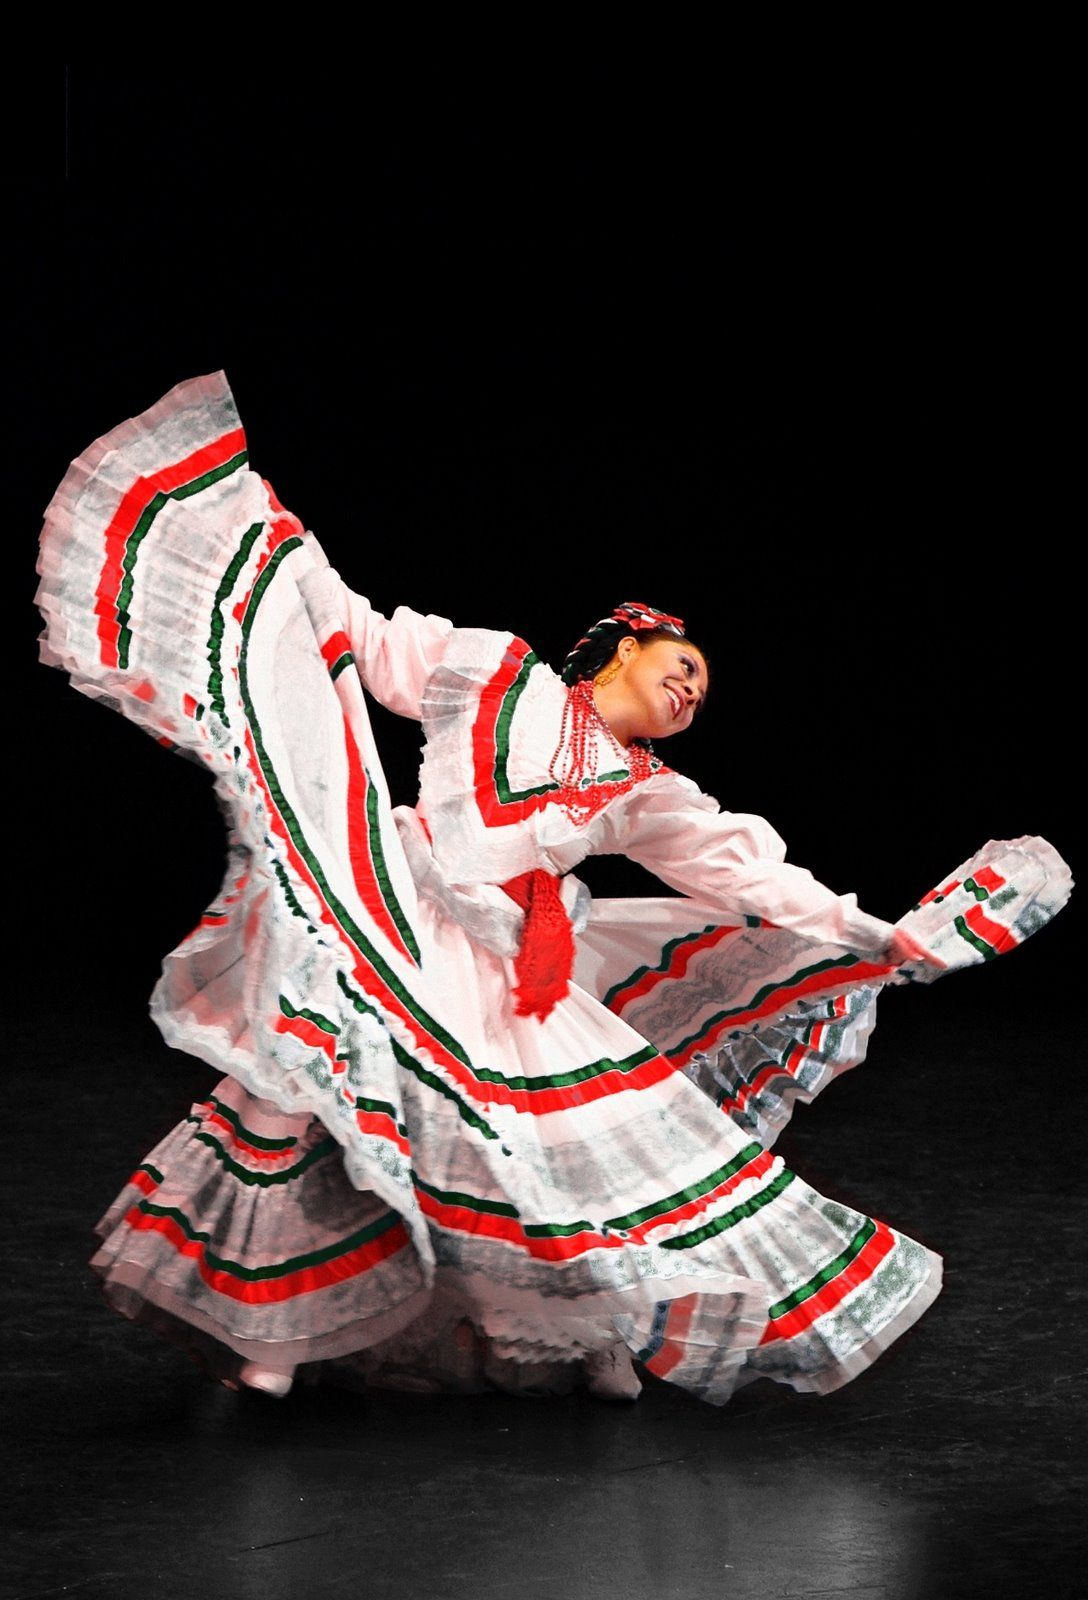 Www Bing Com1 Microsoft143 305 70: Mexican Hat, Mexicans And Dancing